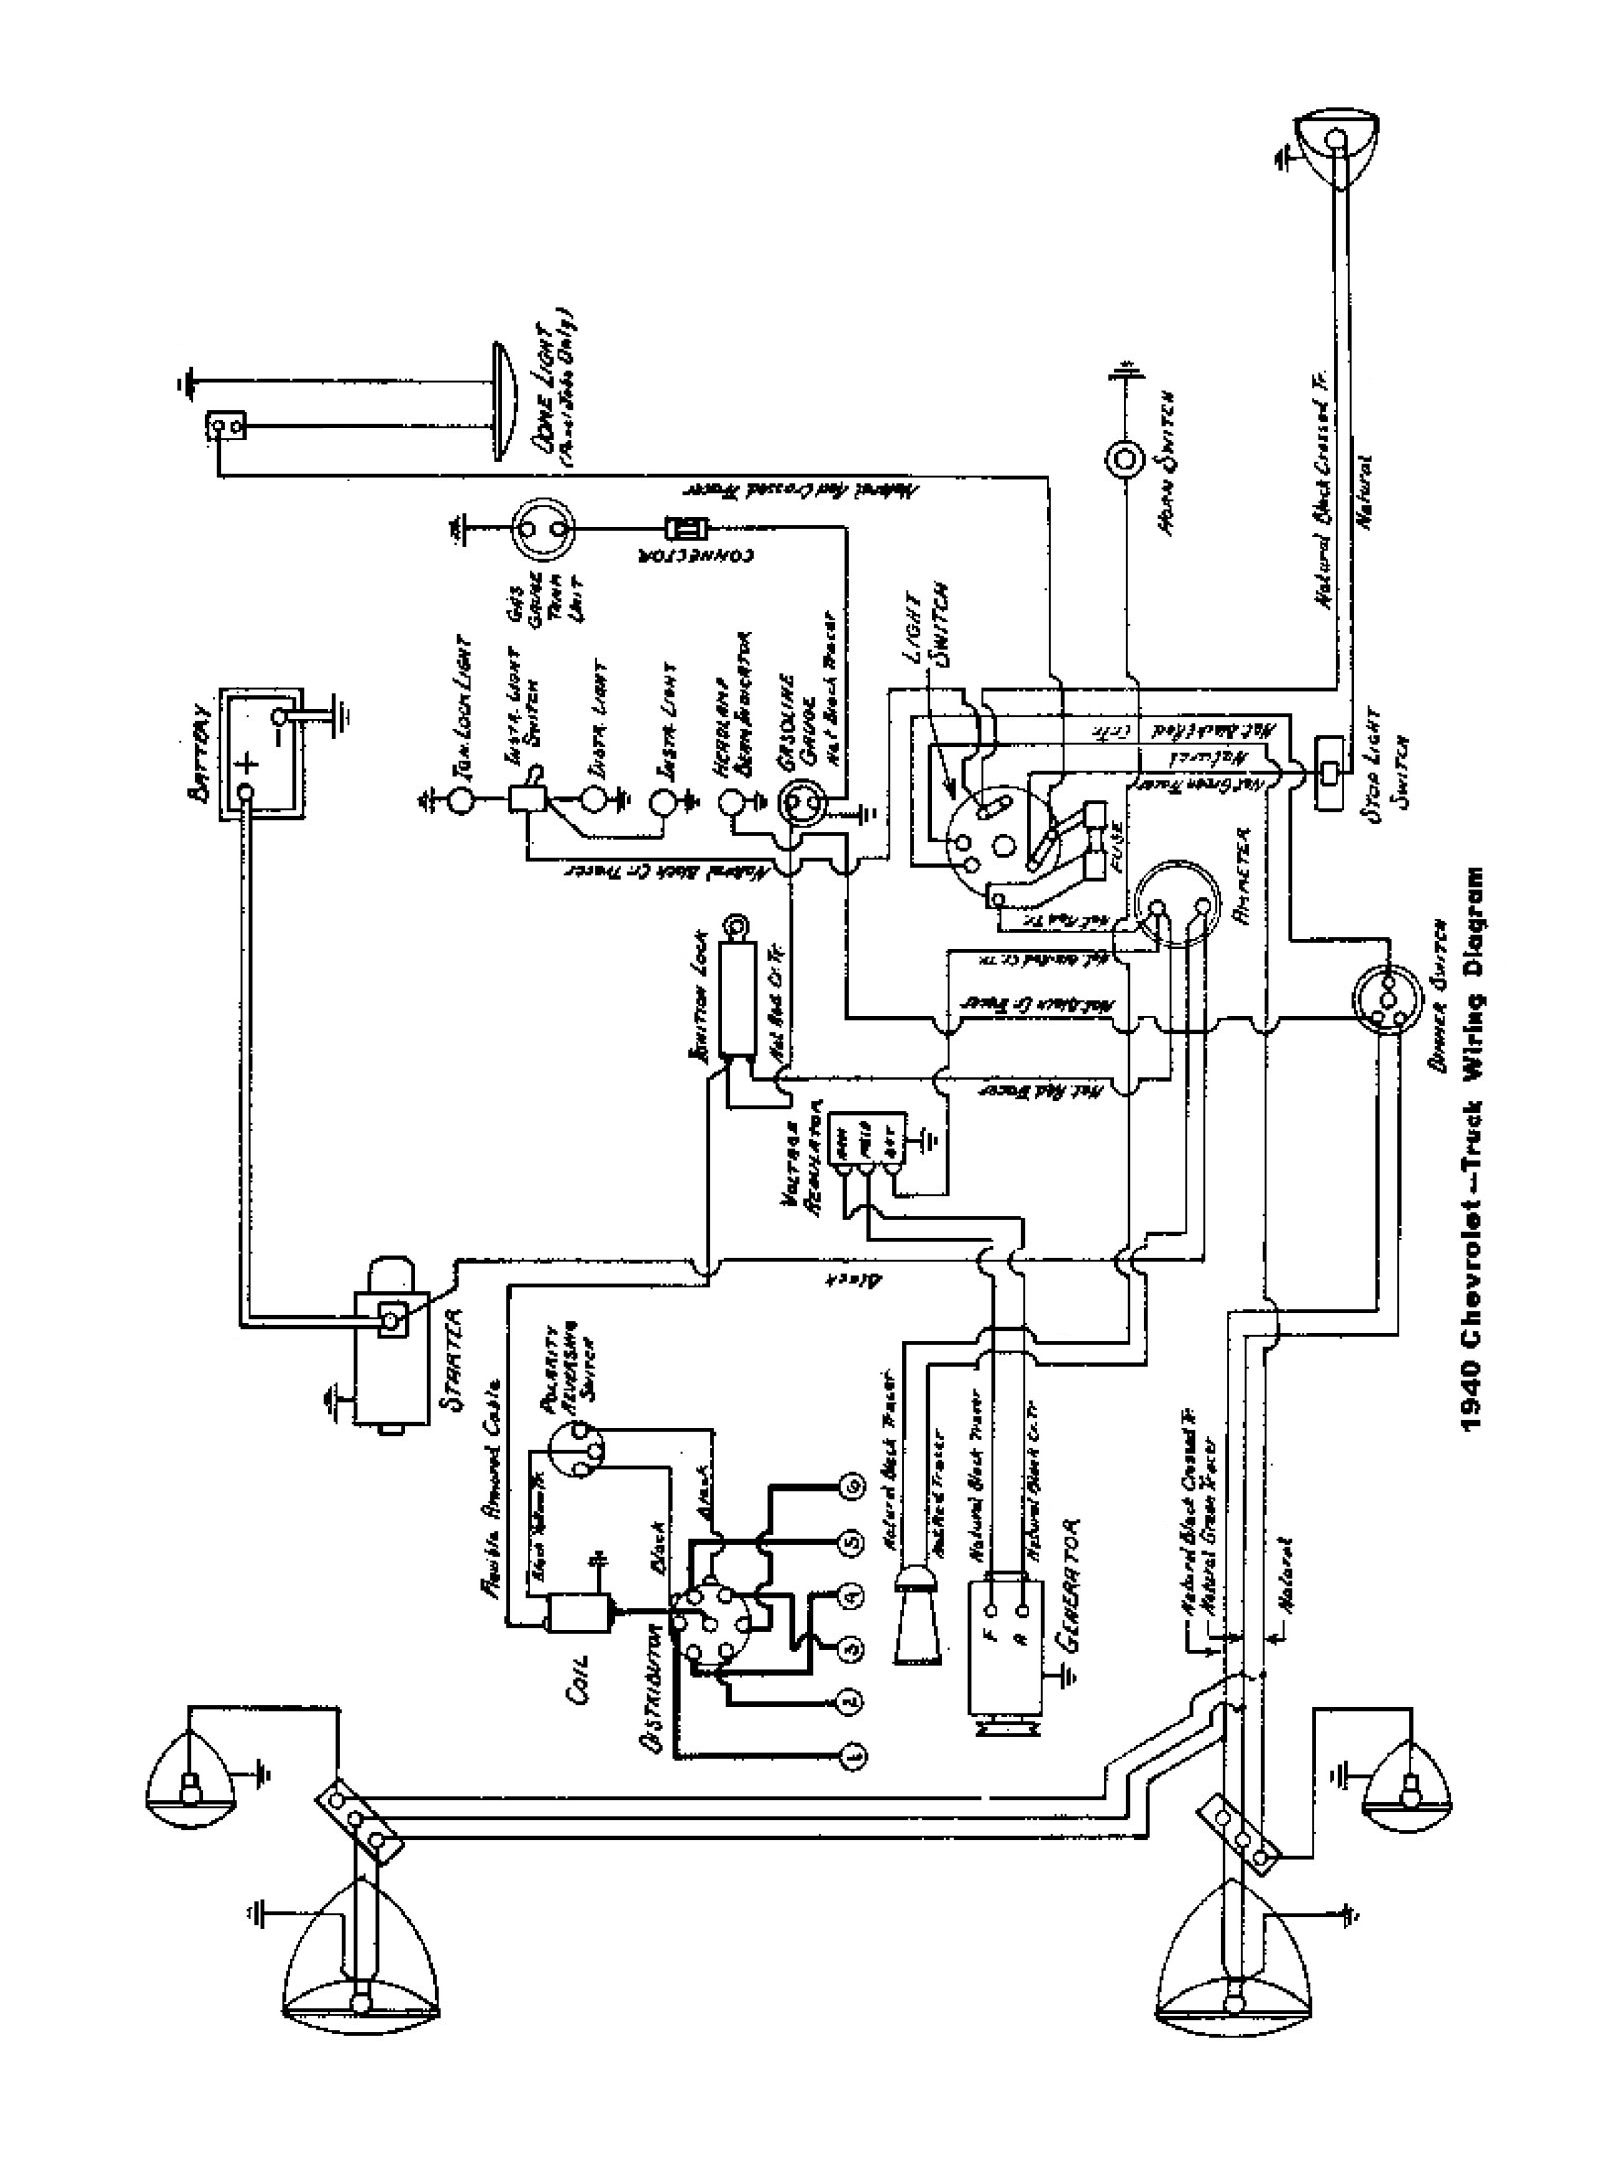 Gm Truck Wiring Diagram Unlimited Access To Engine Harness For 1979 Chevrolet Detailed Rh 7 6 Ocotillo Paysage Com Trailer